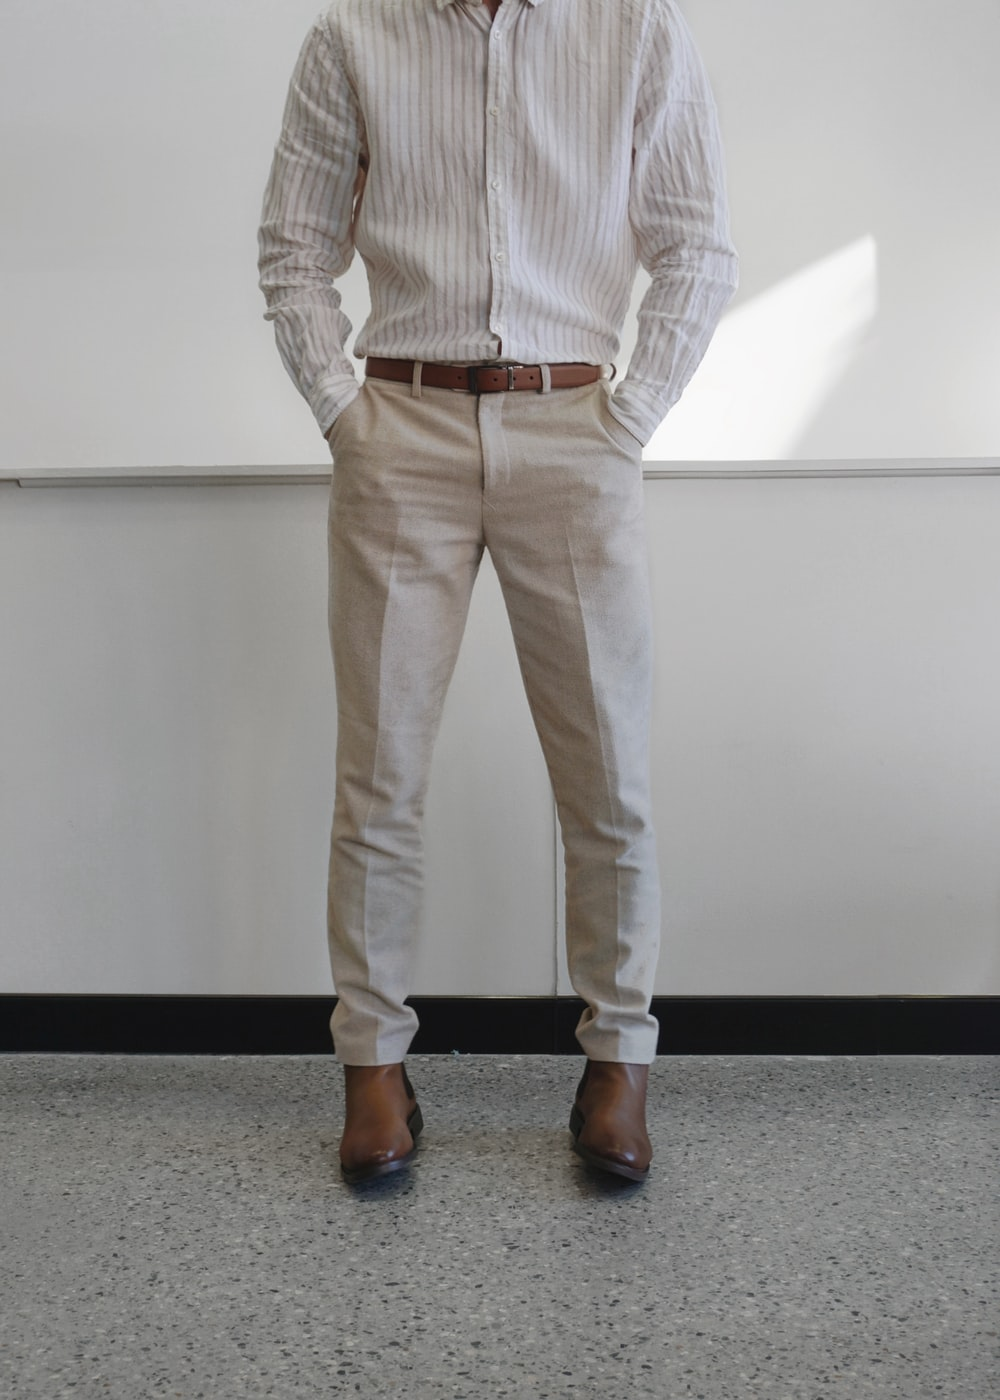 man in white and gray pinstripe dress shirt and white pants